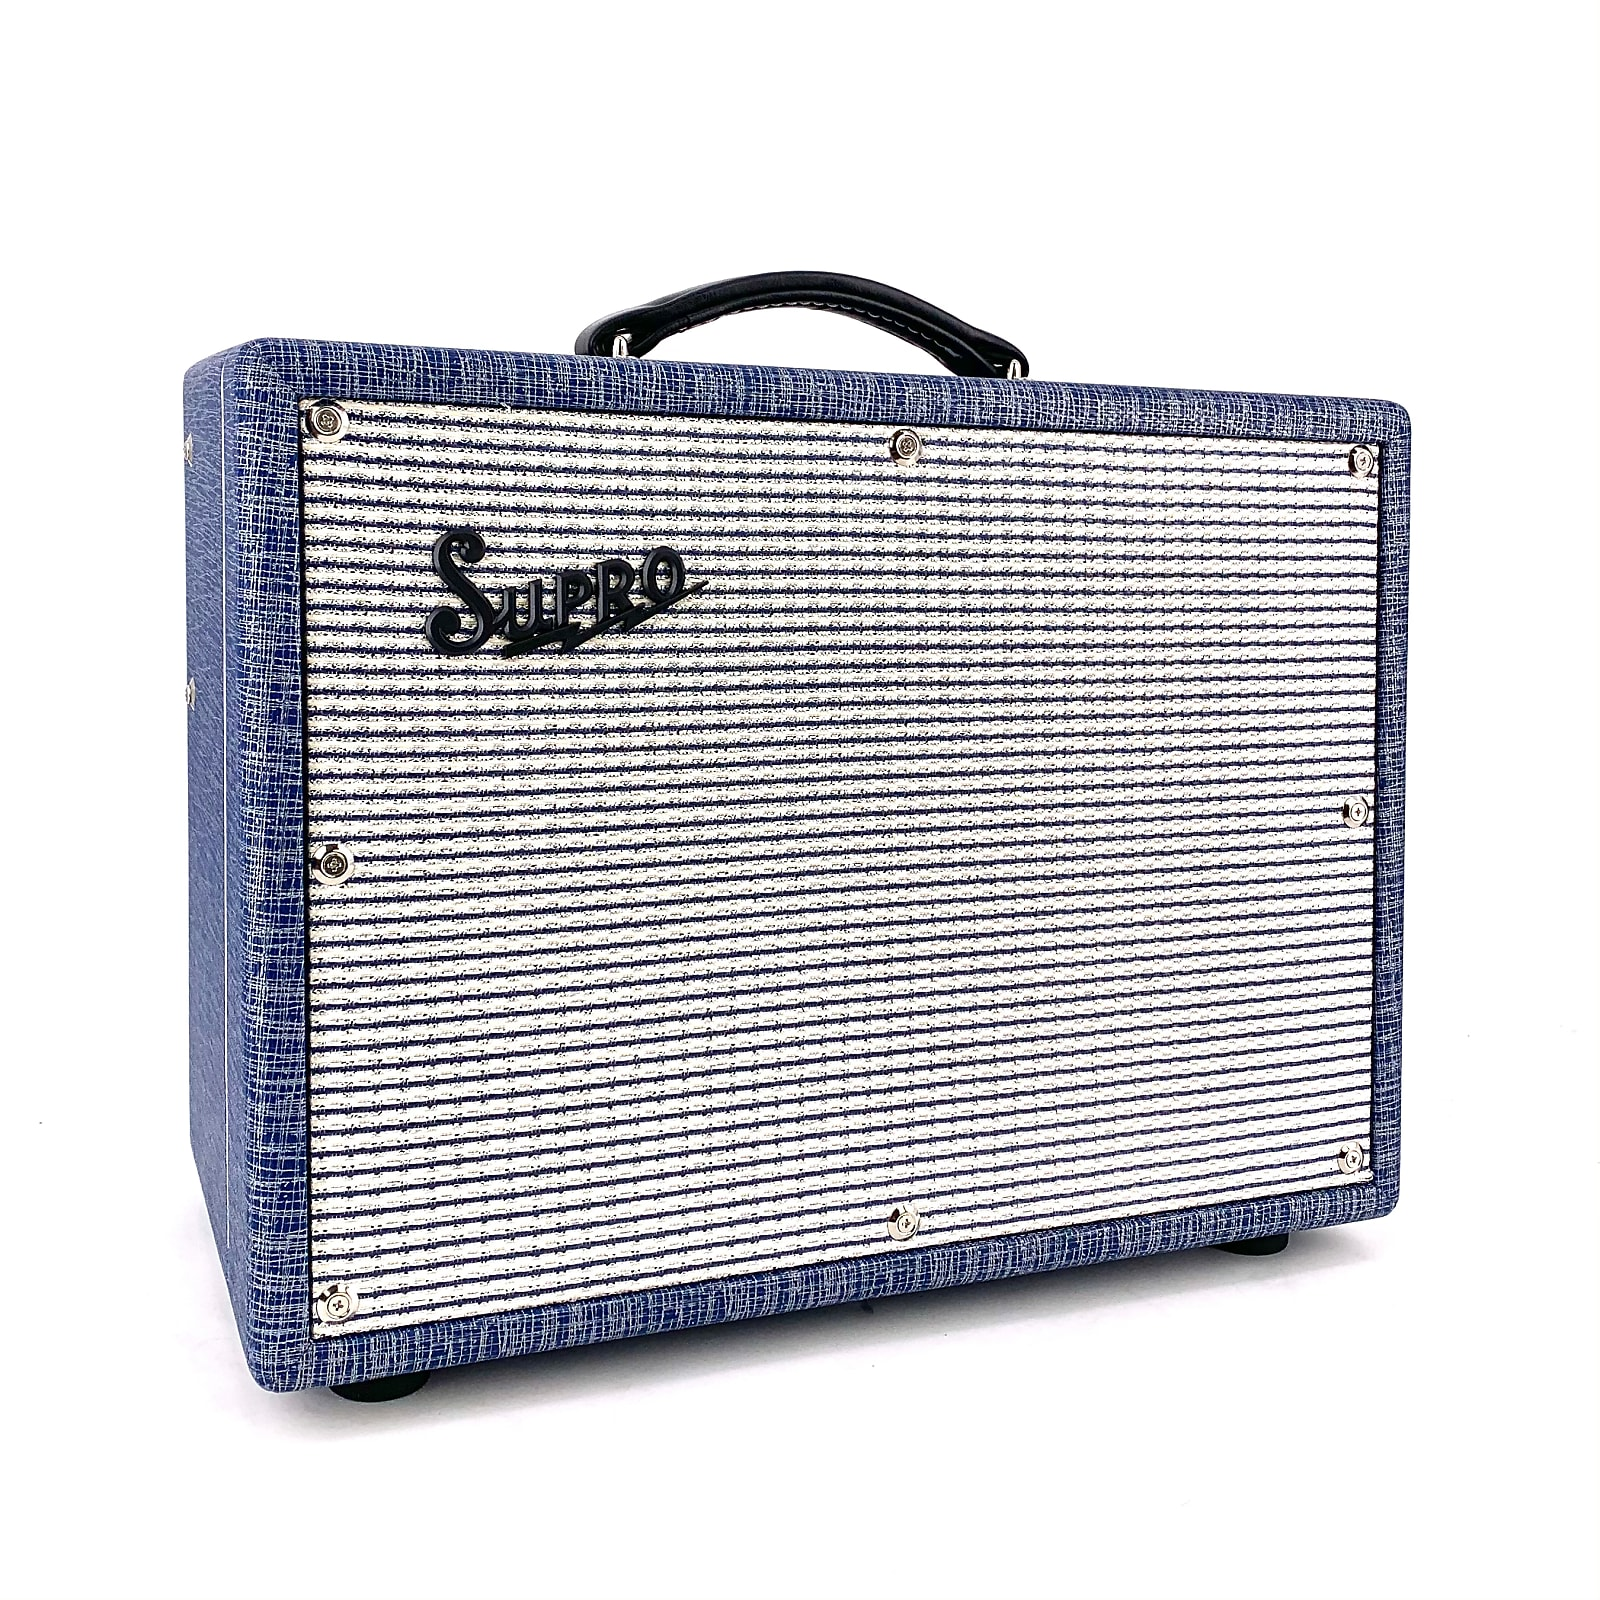 "Supro Keeley Custom 1970RK 1x10"" 25 Watt Tube Combo Amp"